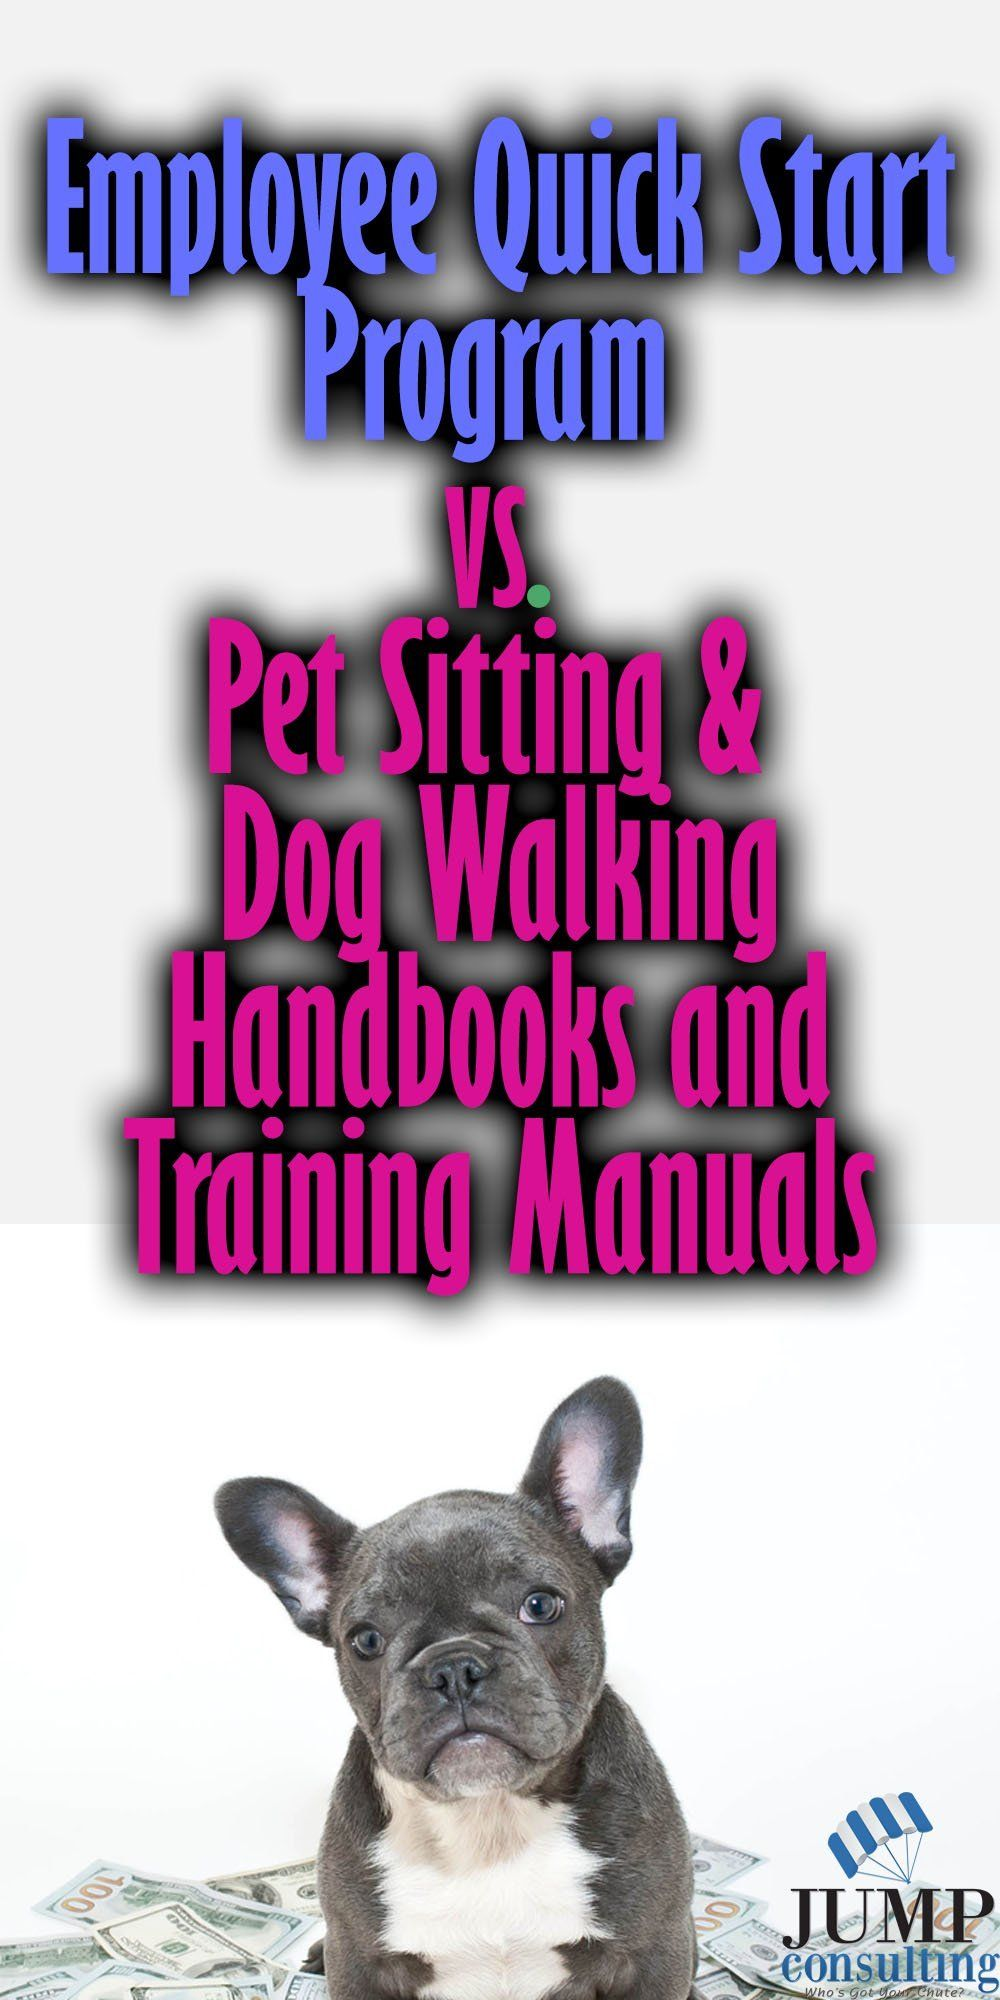 Employee Quick Start Program vs. Pet Sitting and Dog Walking Employee  Handbook and Training Manual